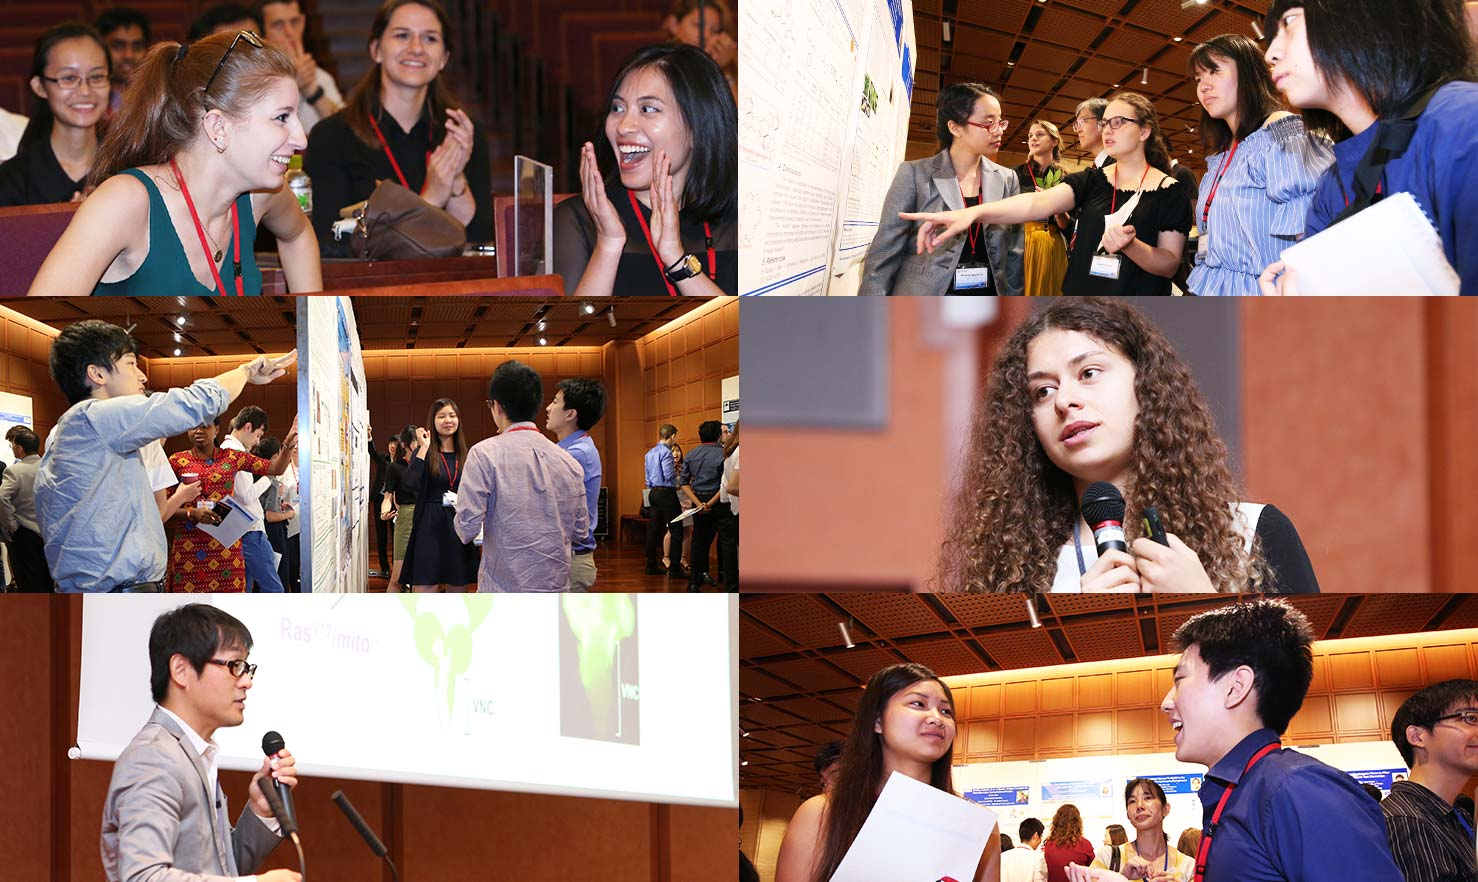 symposium collage